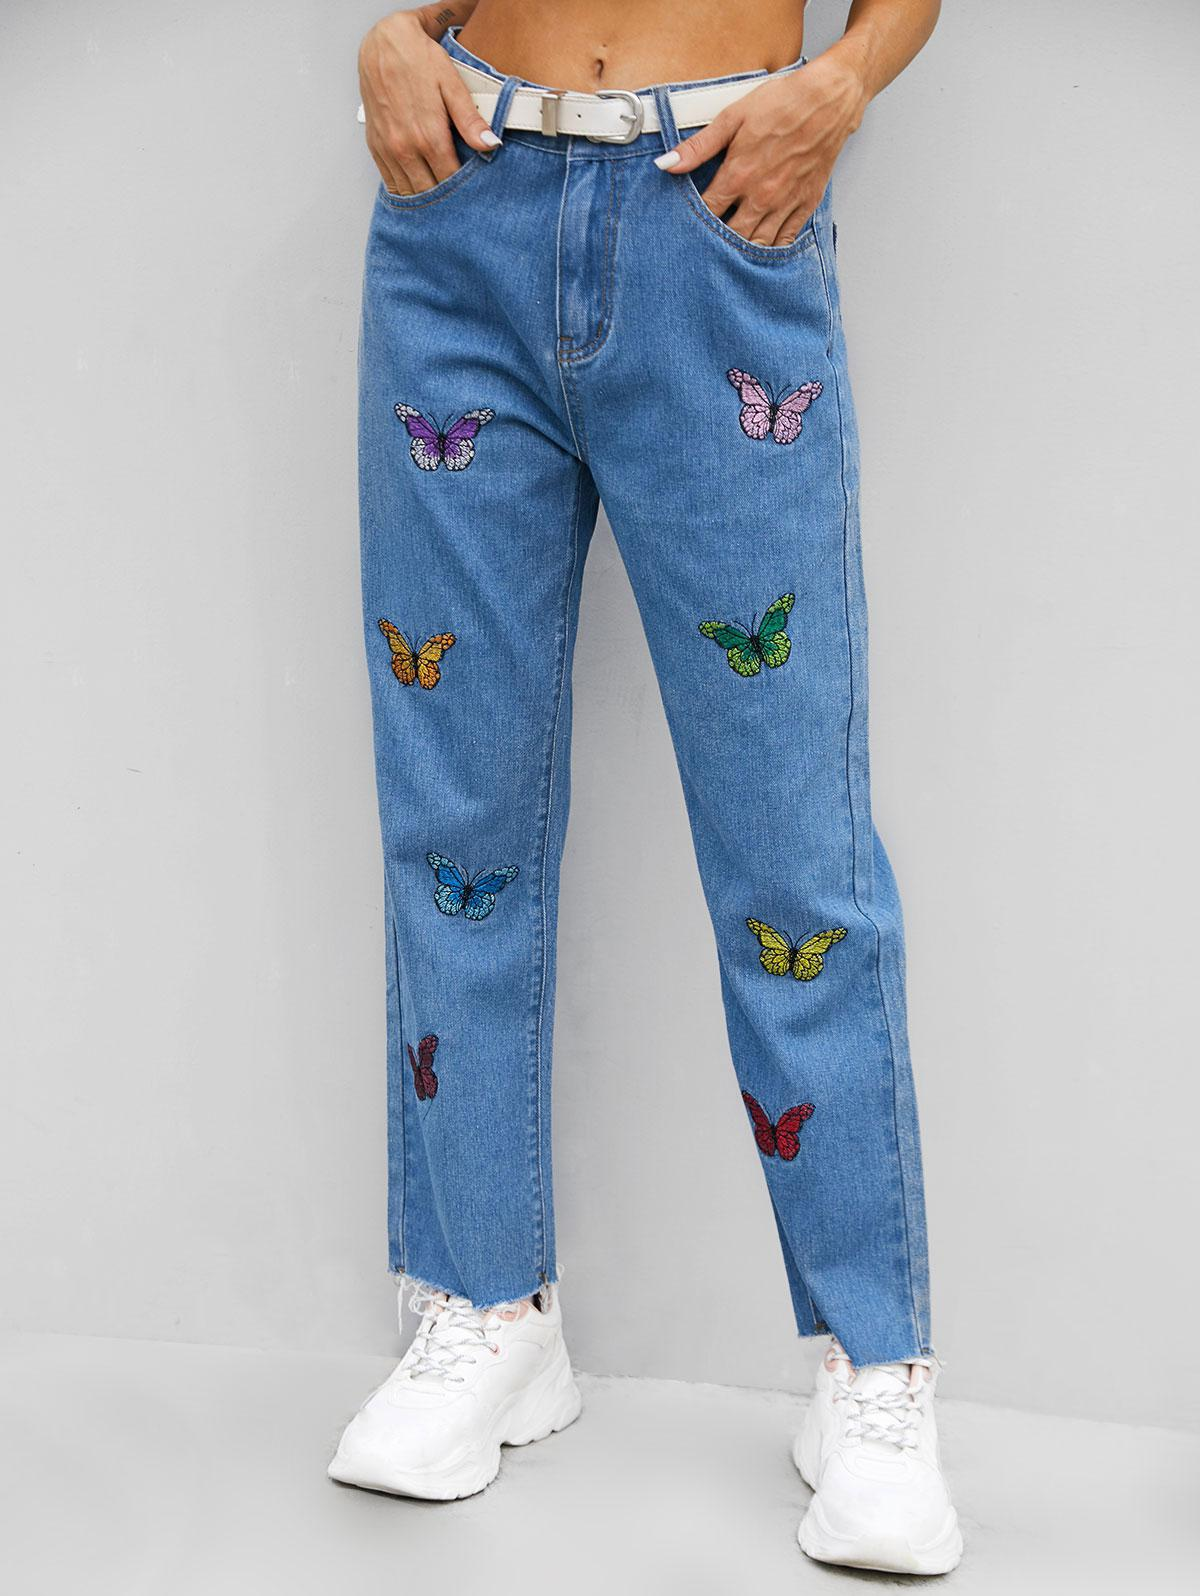 Multicolored Butterfly Embroidered Frayed Hem Jeans